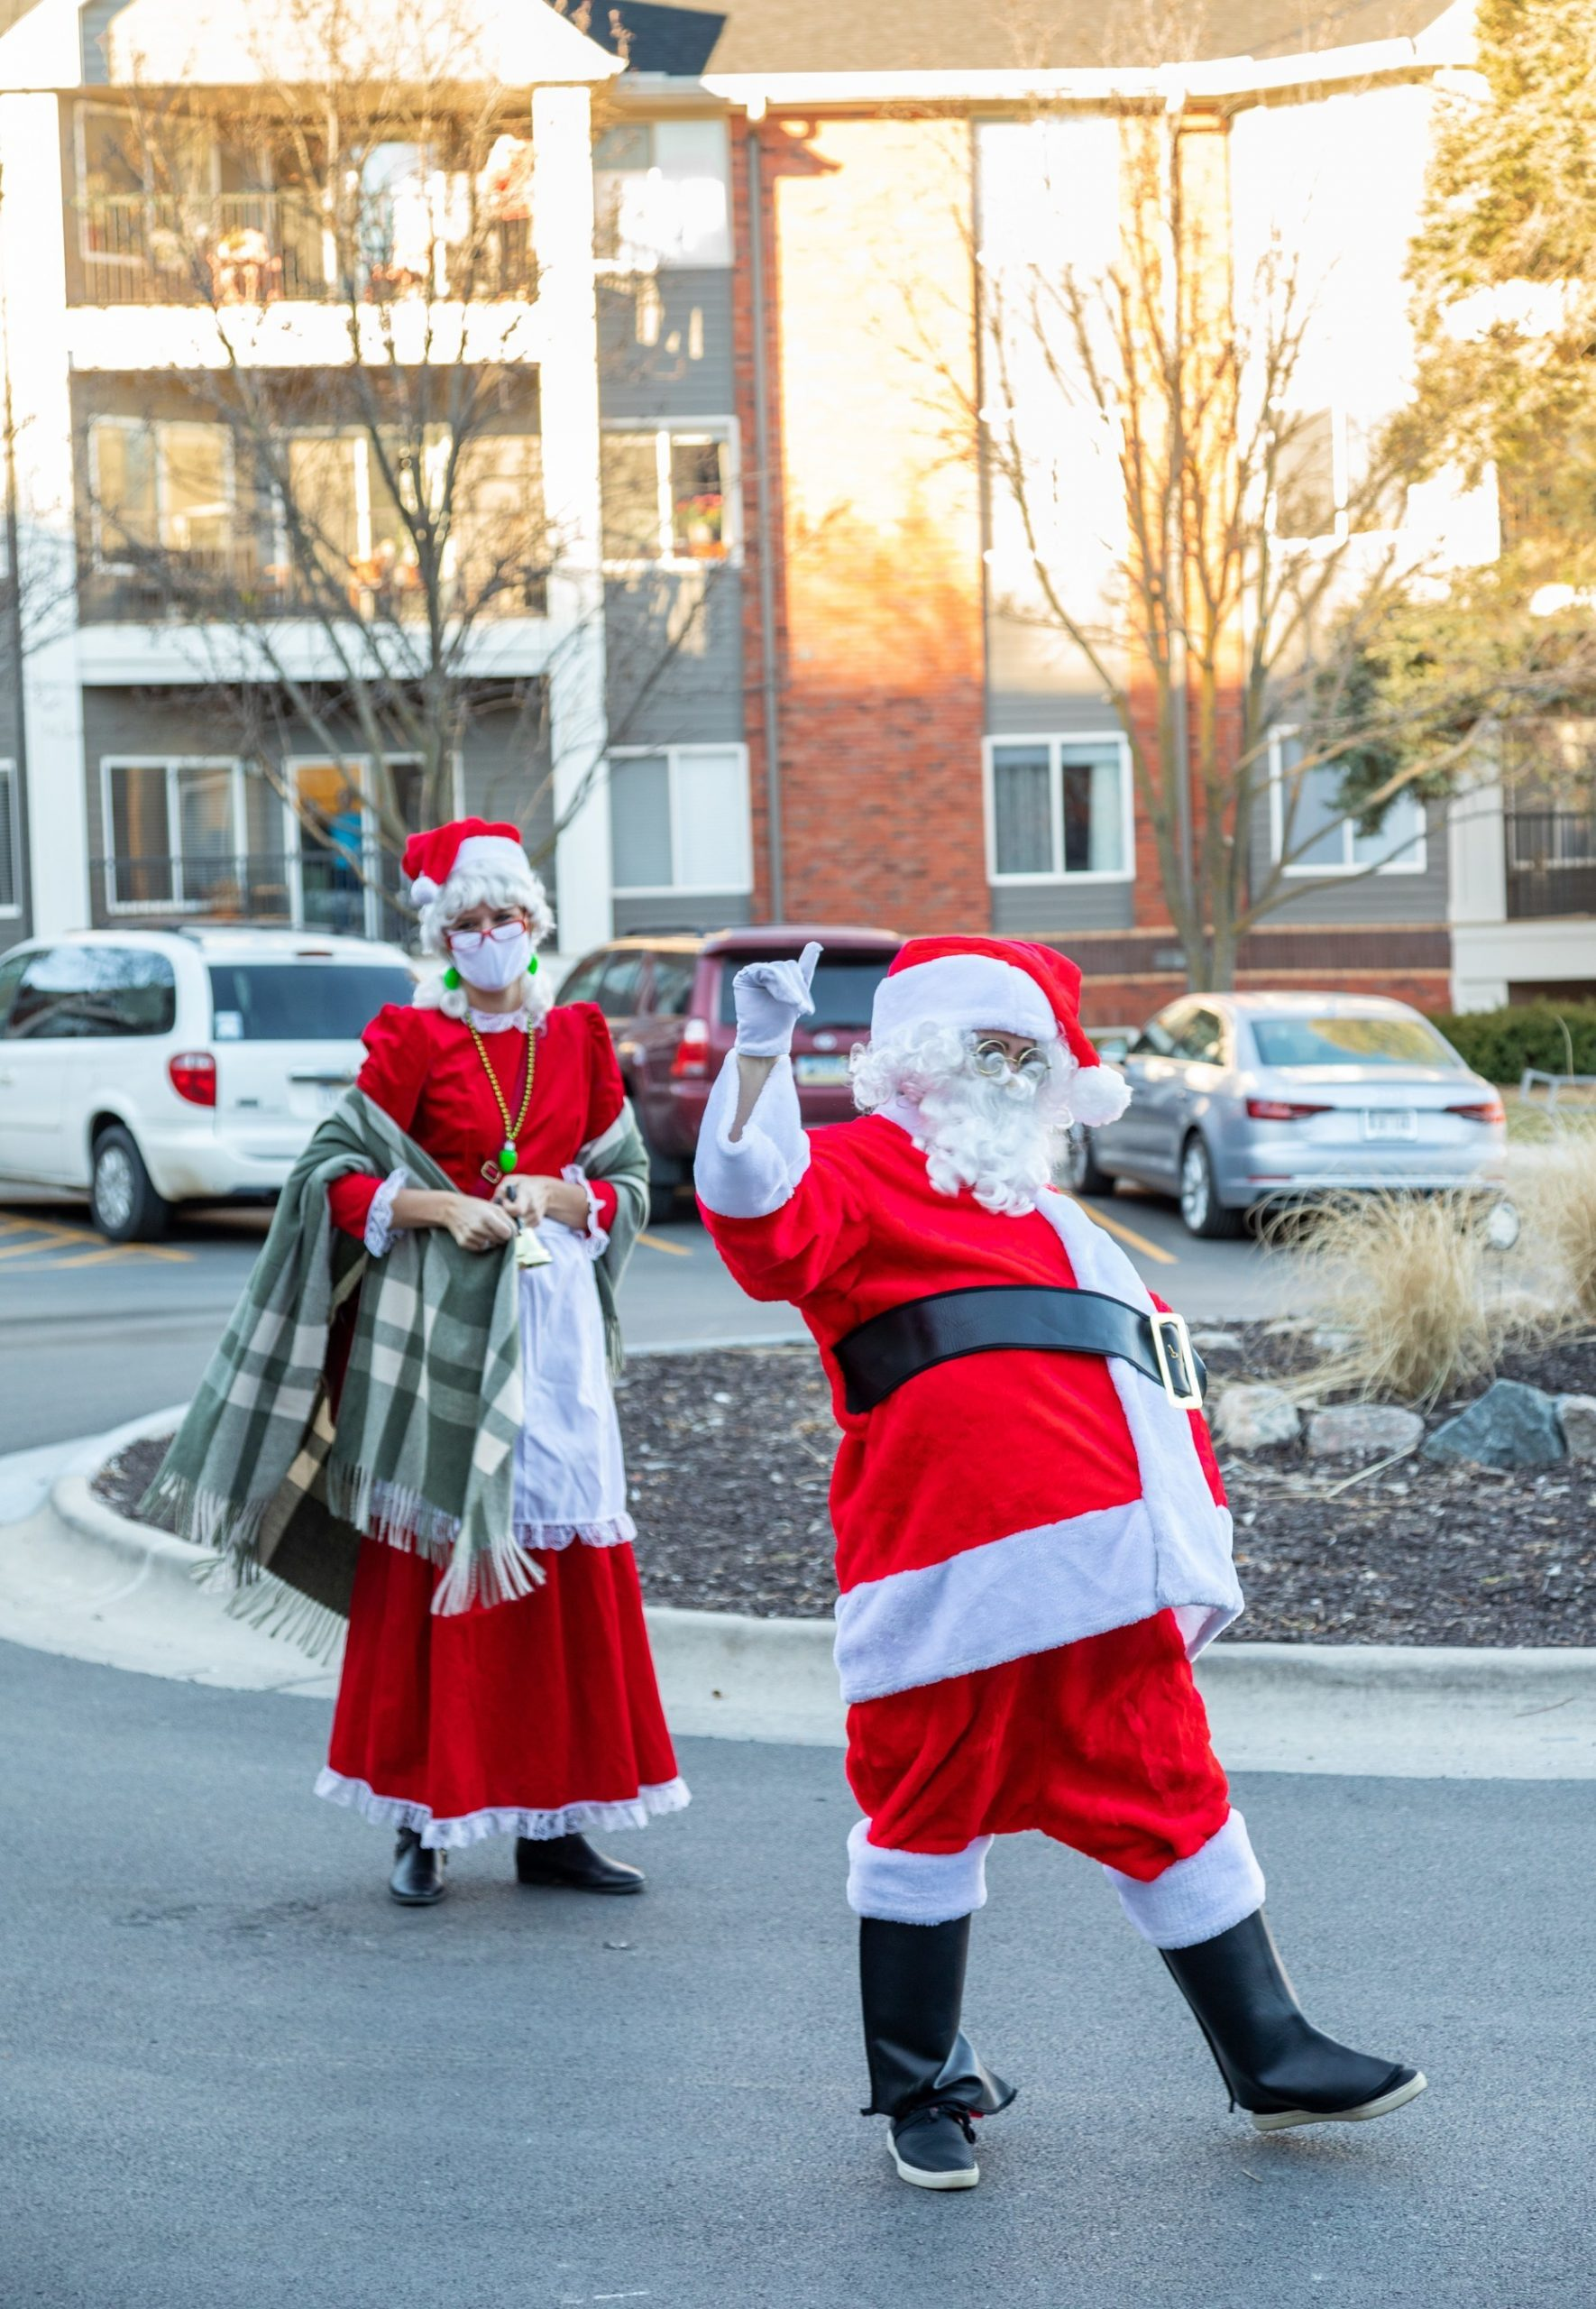 Holiday Parades, Safe Connection and Help with Zoom–Immanuel Communities are Putting Senior Residents First This Season